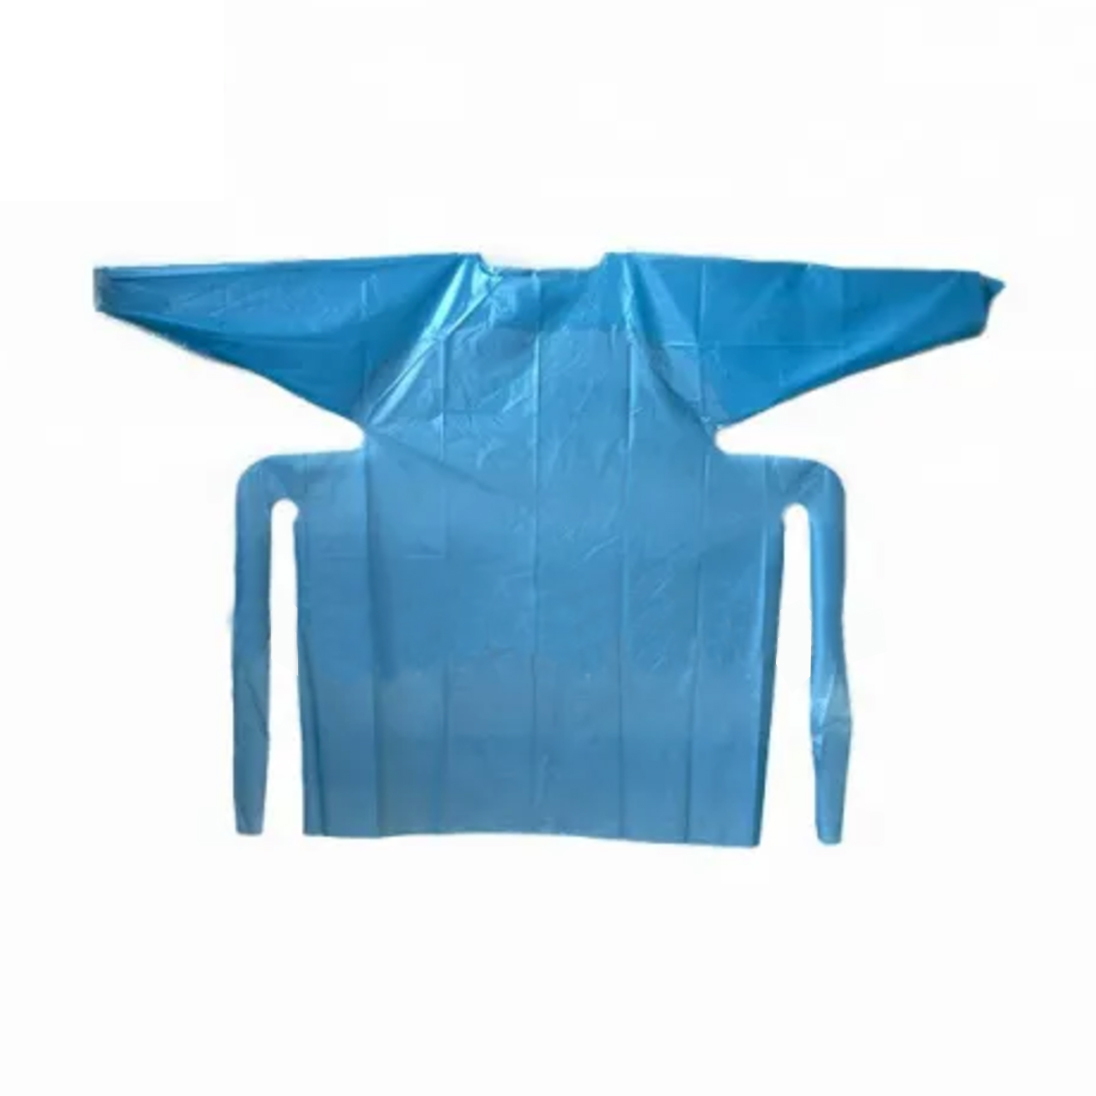 Non-Woven Basic Gown, AAMI Level 2